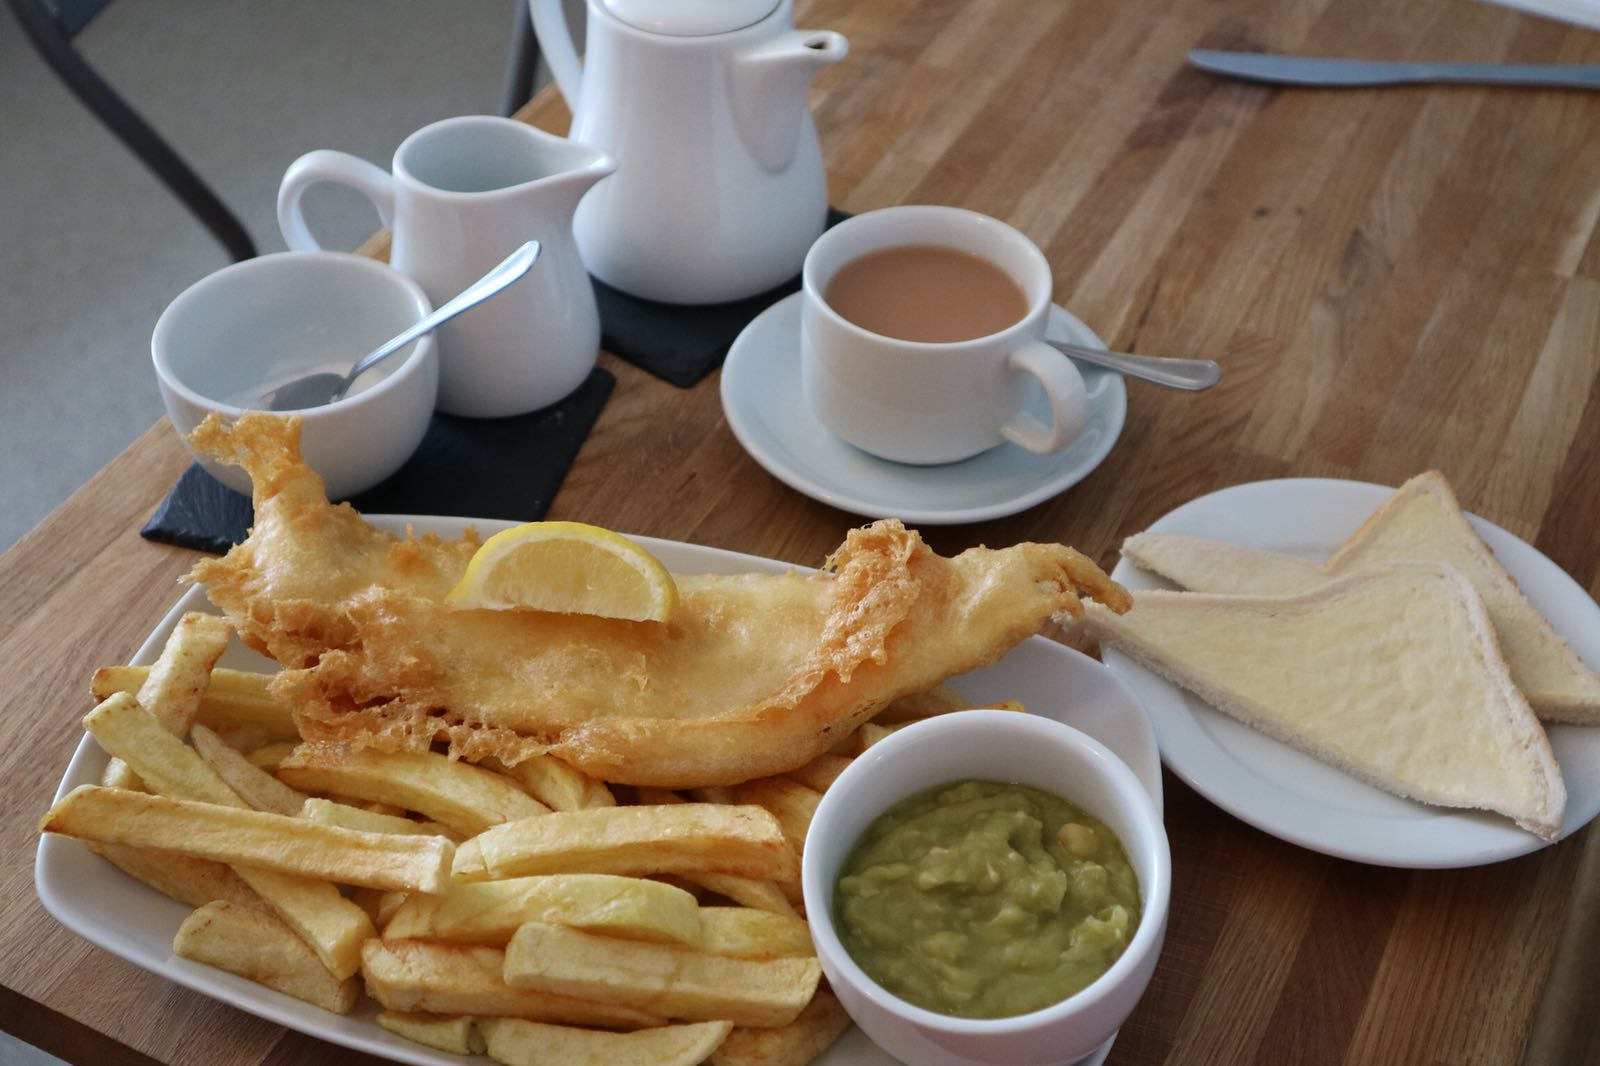 Cafe fish & chips meal